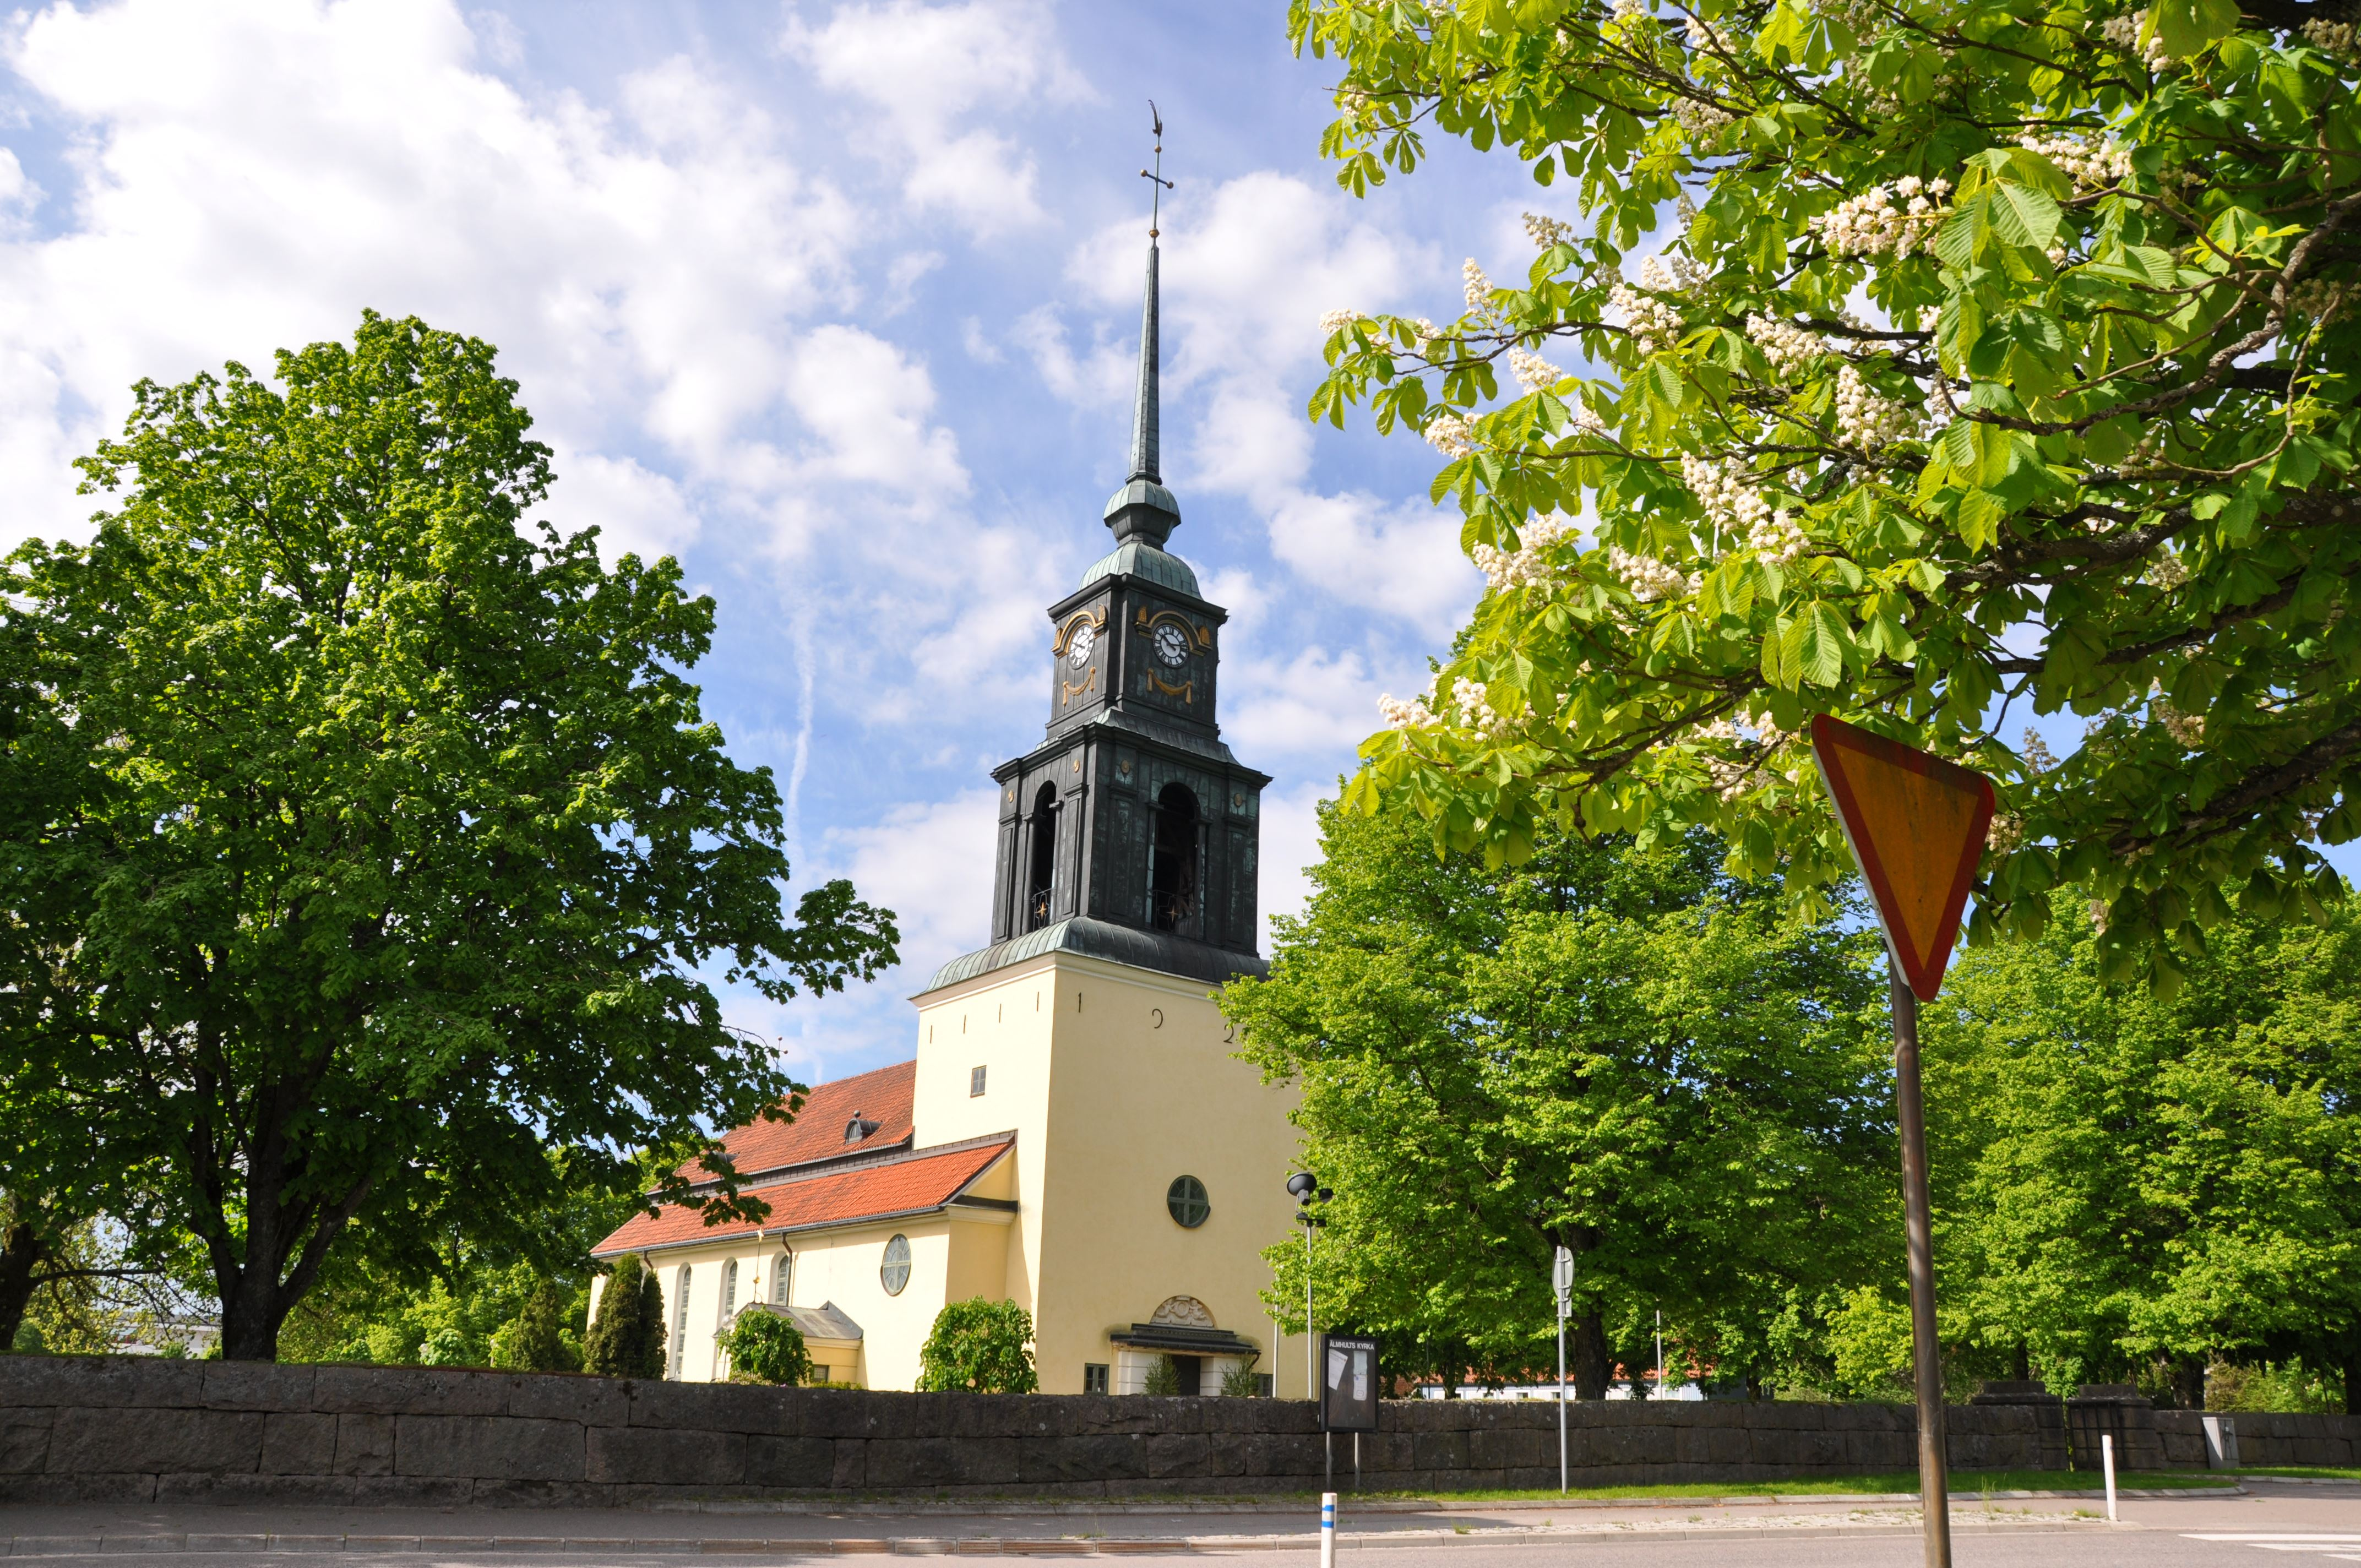 Älmhult church